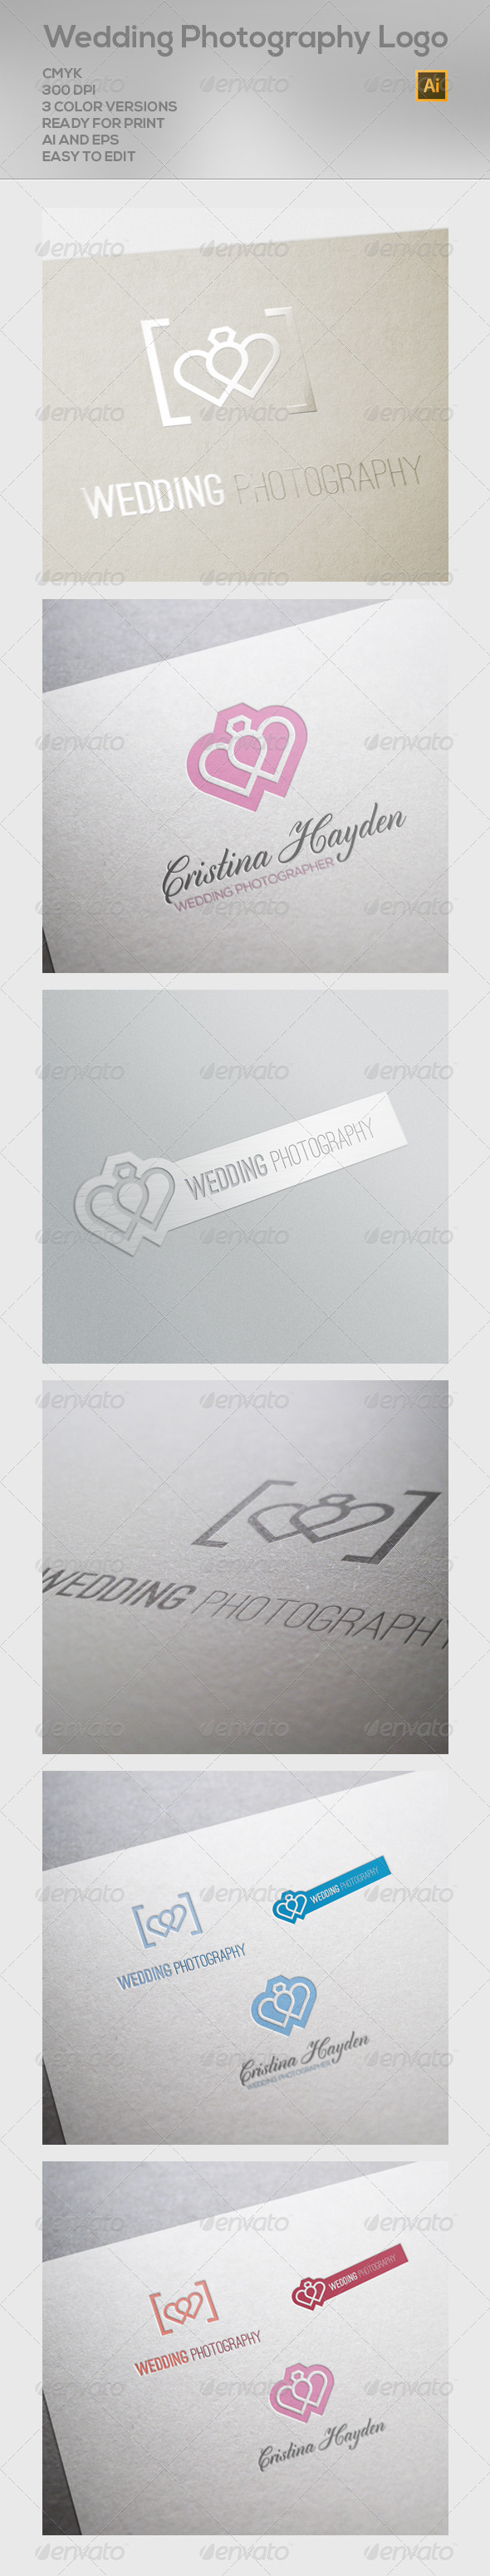 GraphicRiver Wedding Photography Logo 6592751